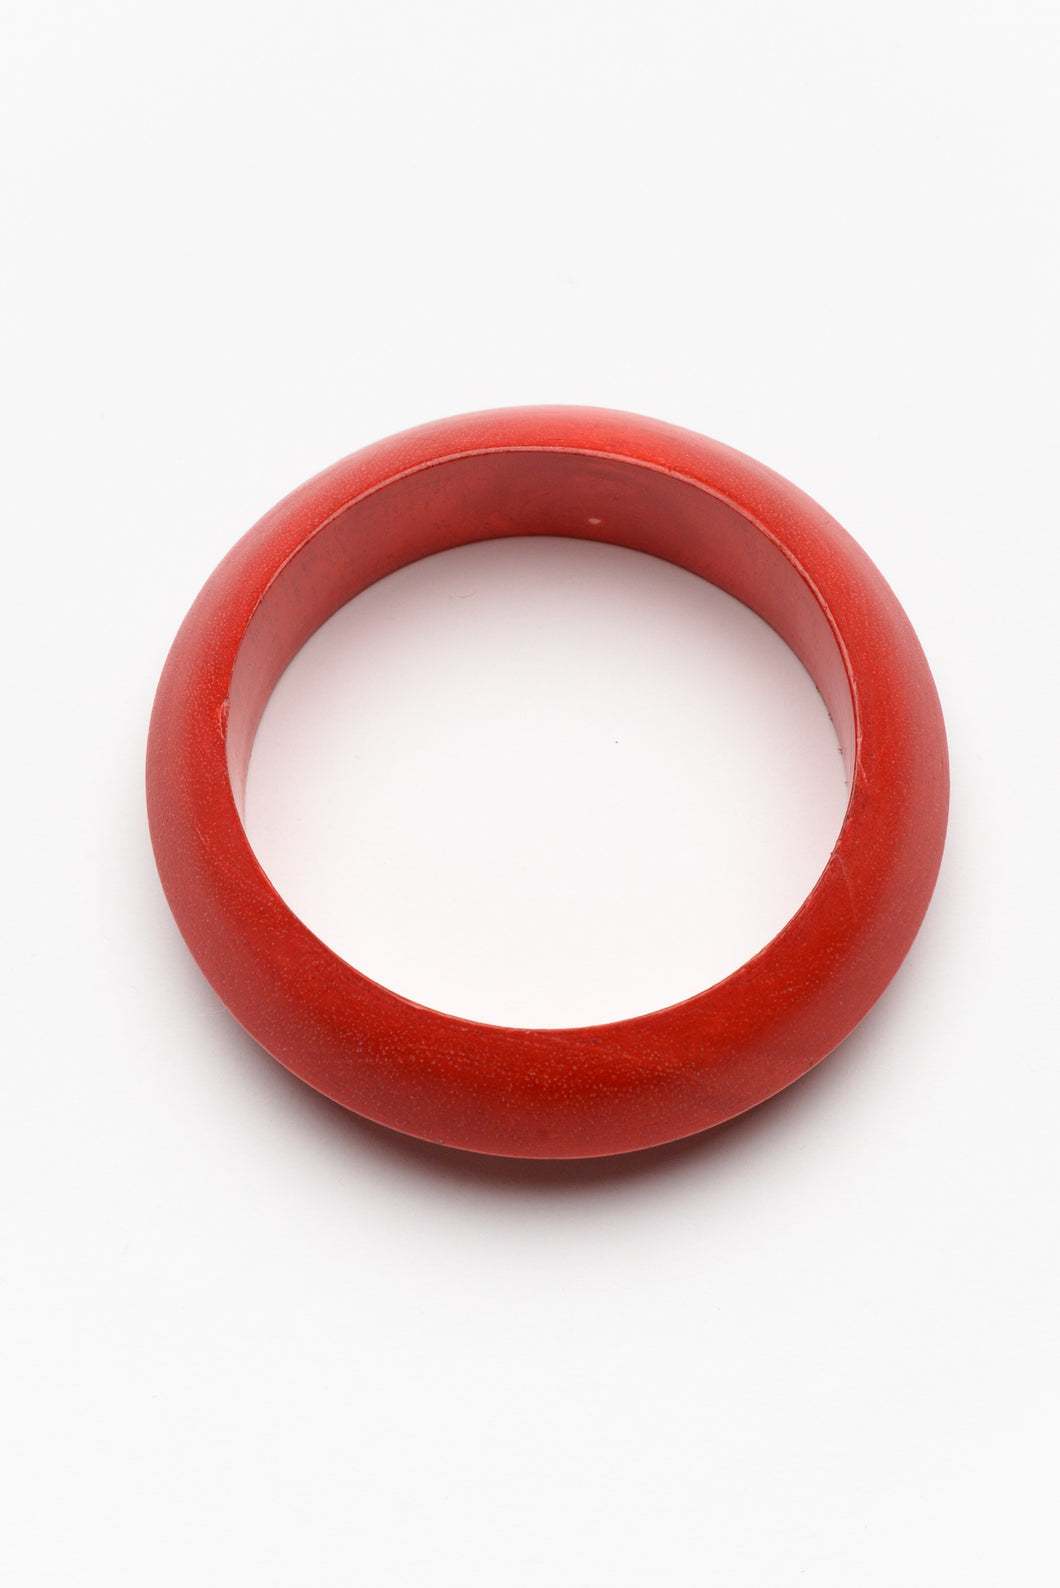 Jessica Red Wood Bangle